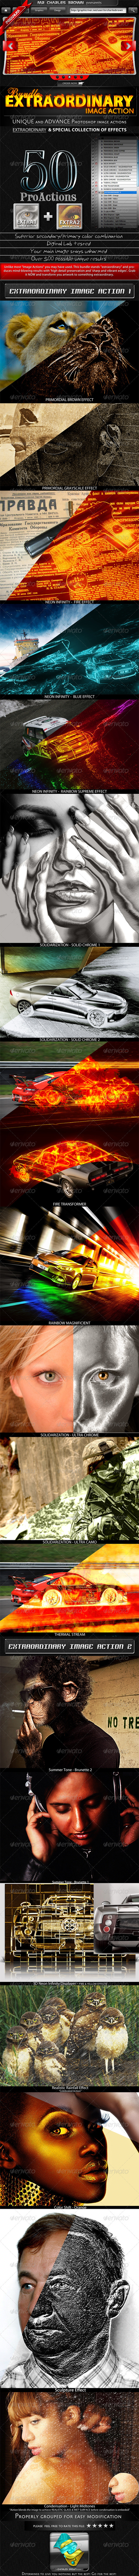 GraphicRiver Extraordinary Image Pro Action Bundle 2356875